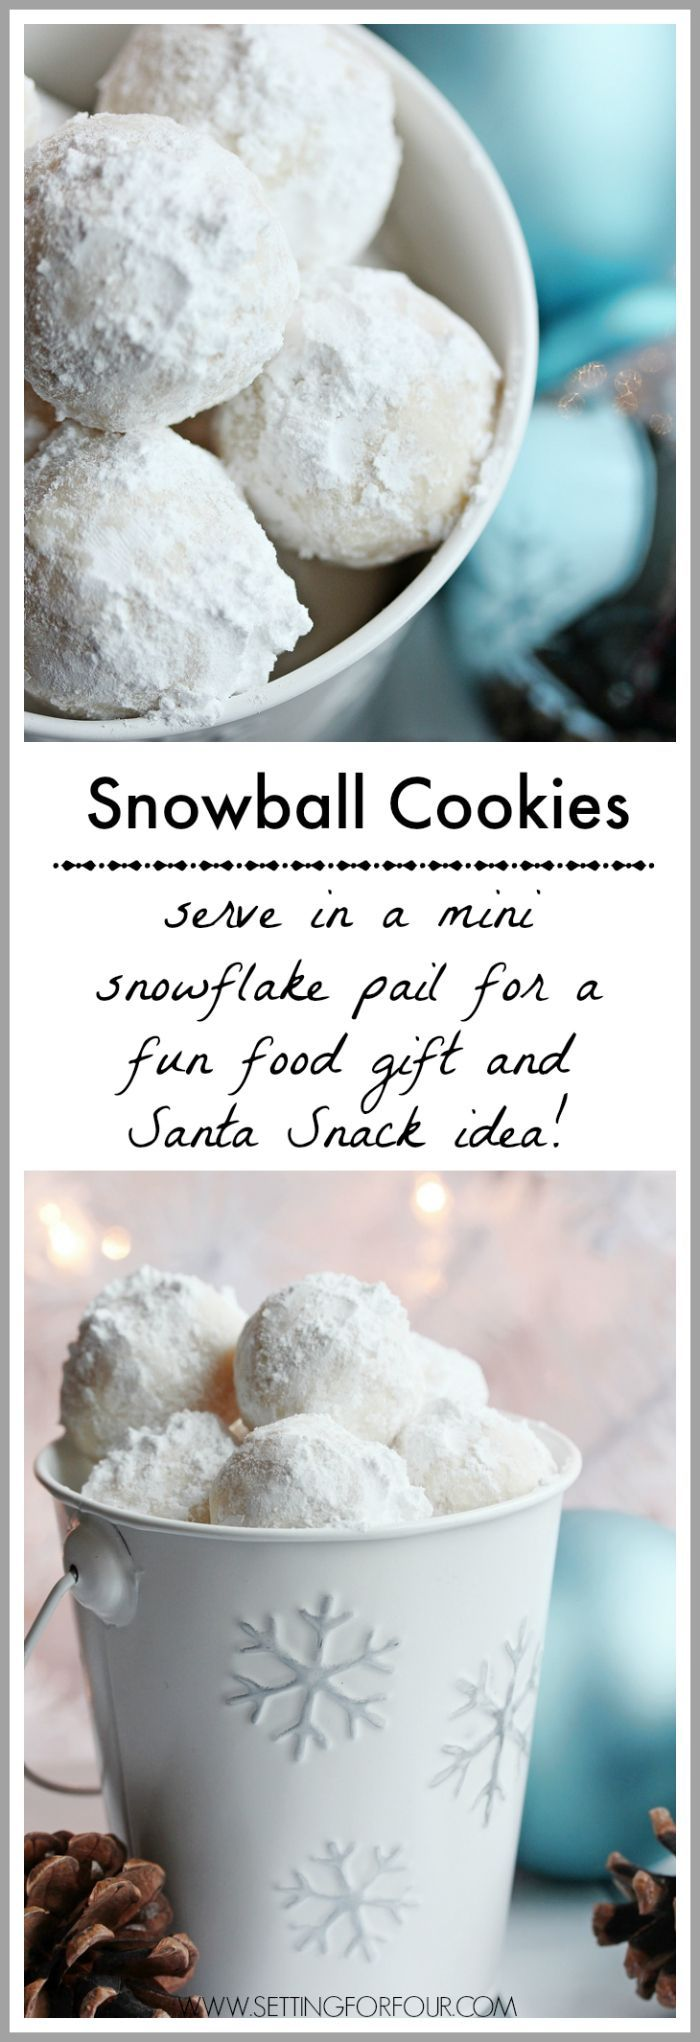 These Snowball Cookies look like adorable mini snowballs! Fabulous DIY Christmas gift Idea and Santa Snack idea too! www.settingforfour.com